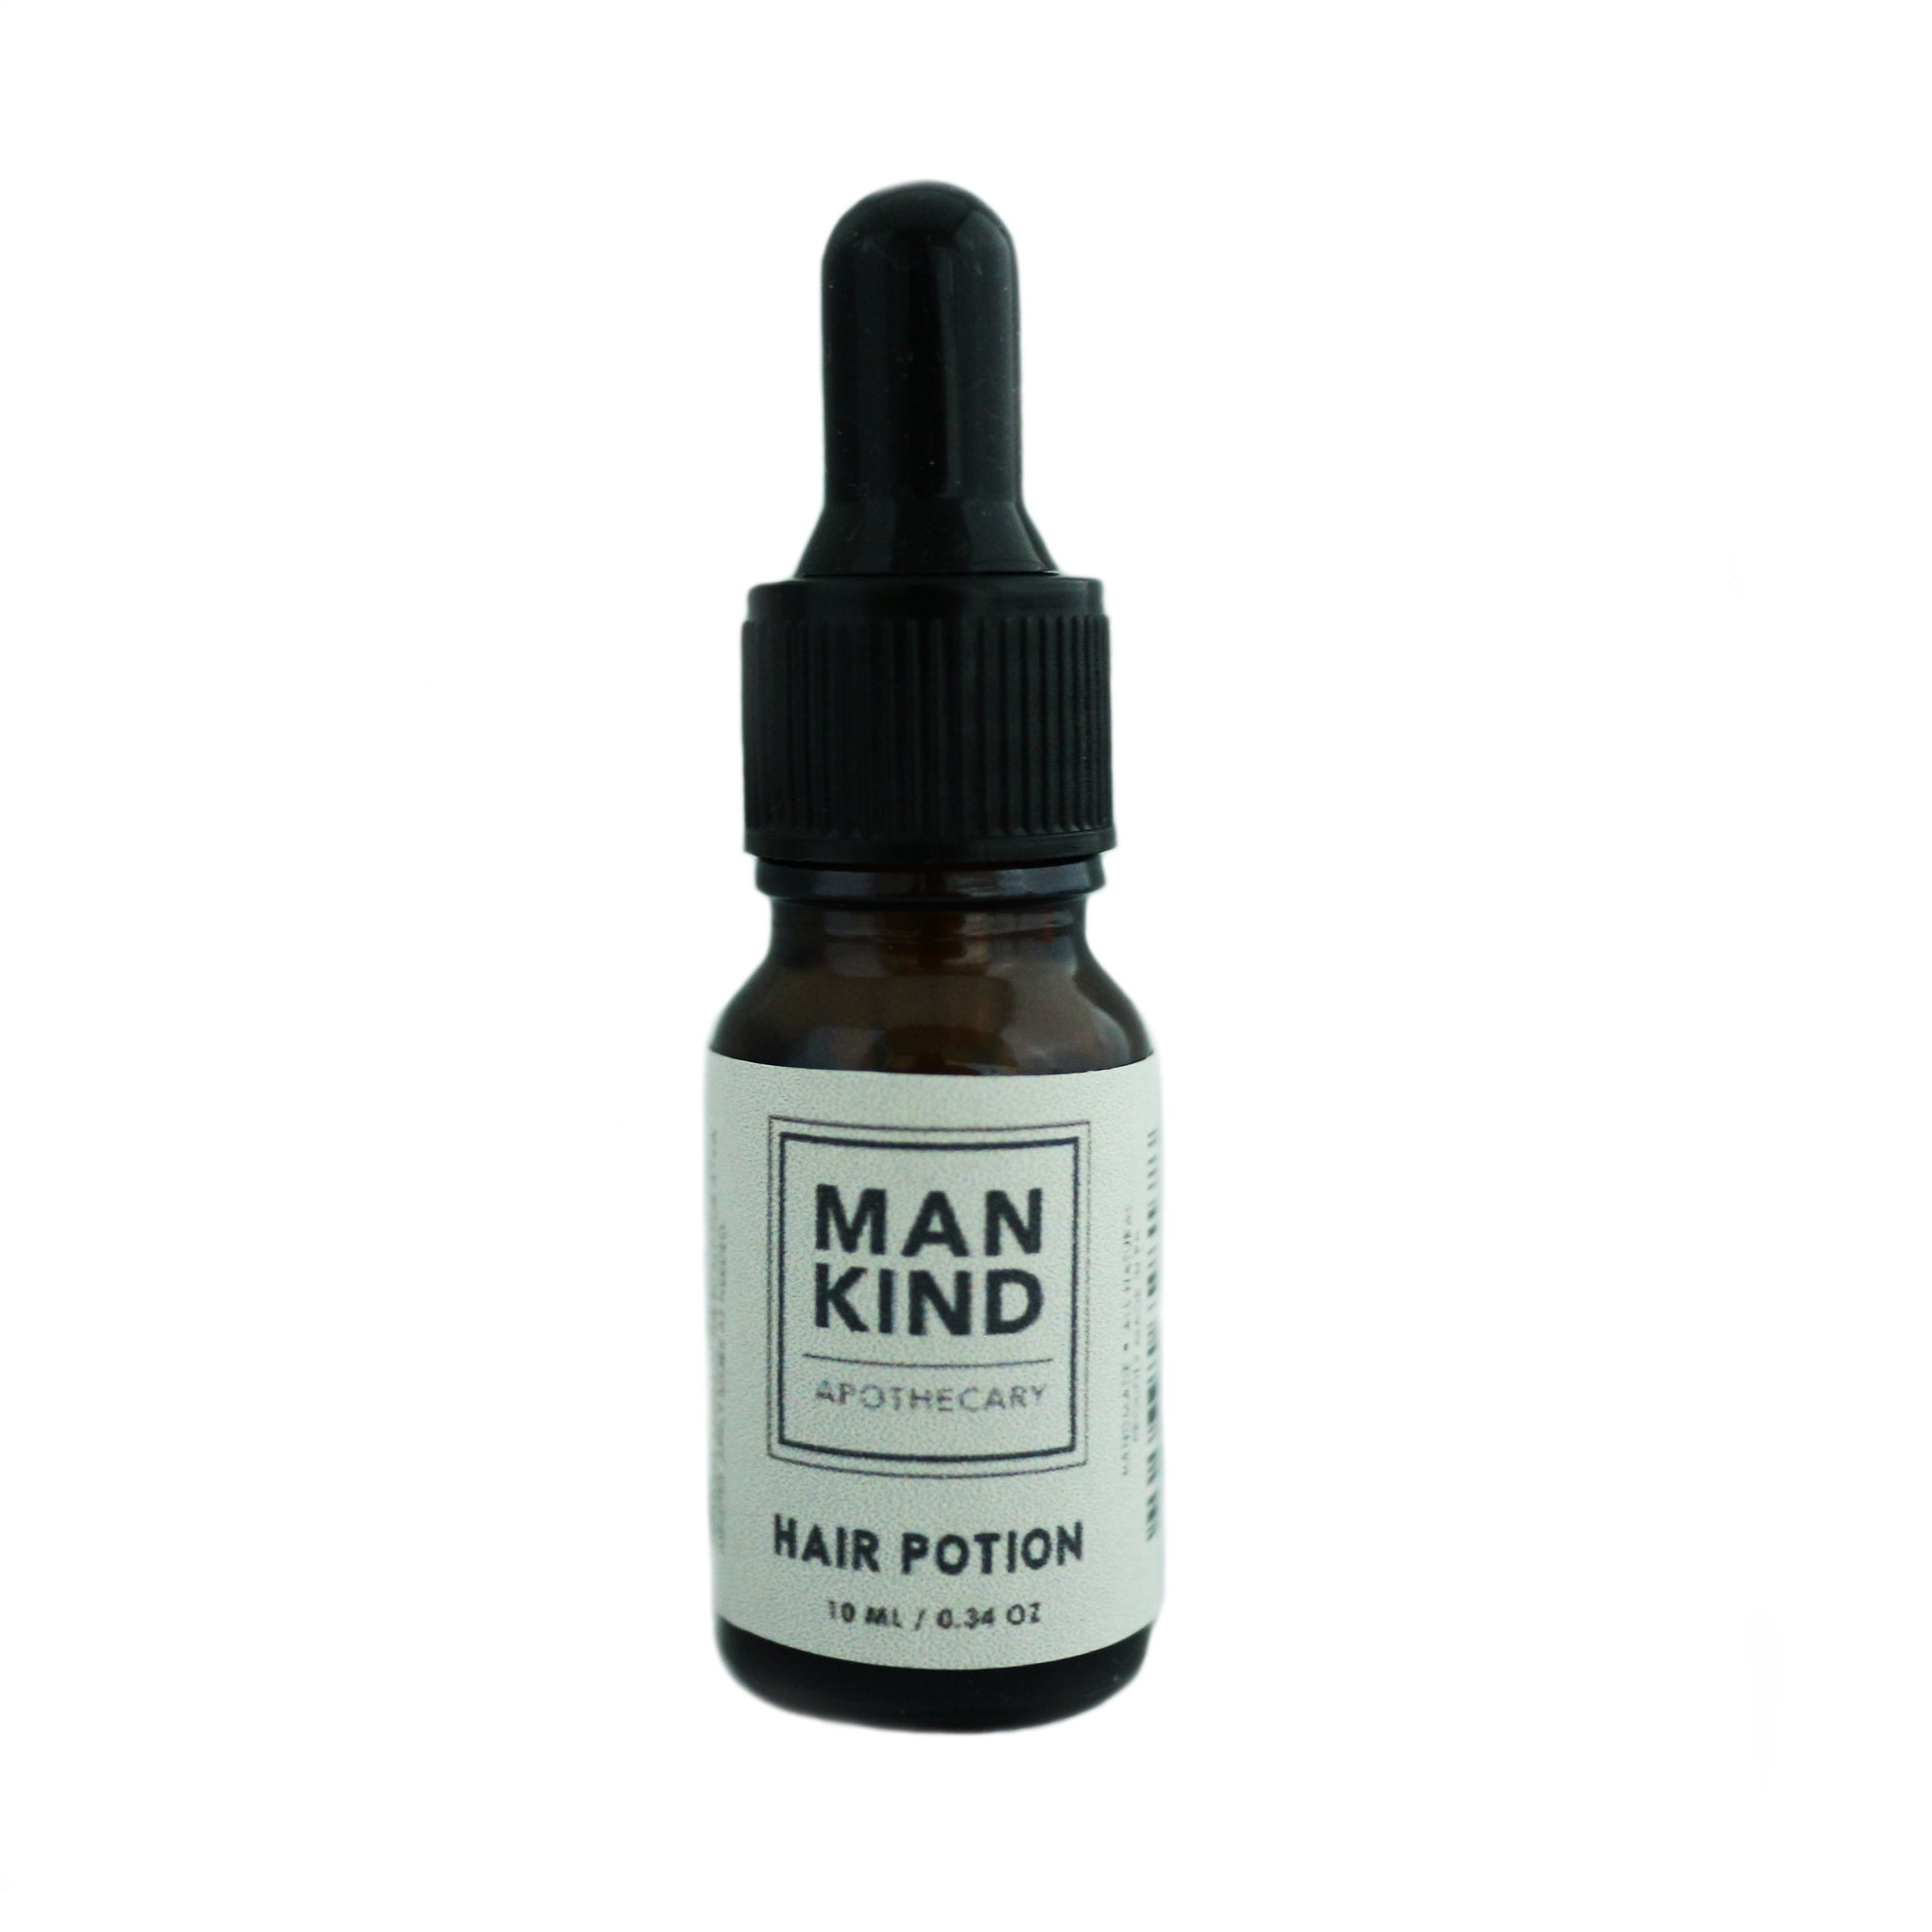 Mankind Apothecary Hair Potion 10ml